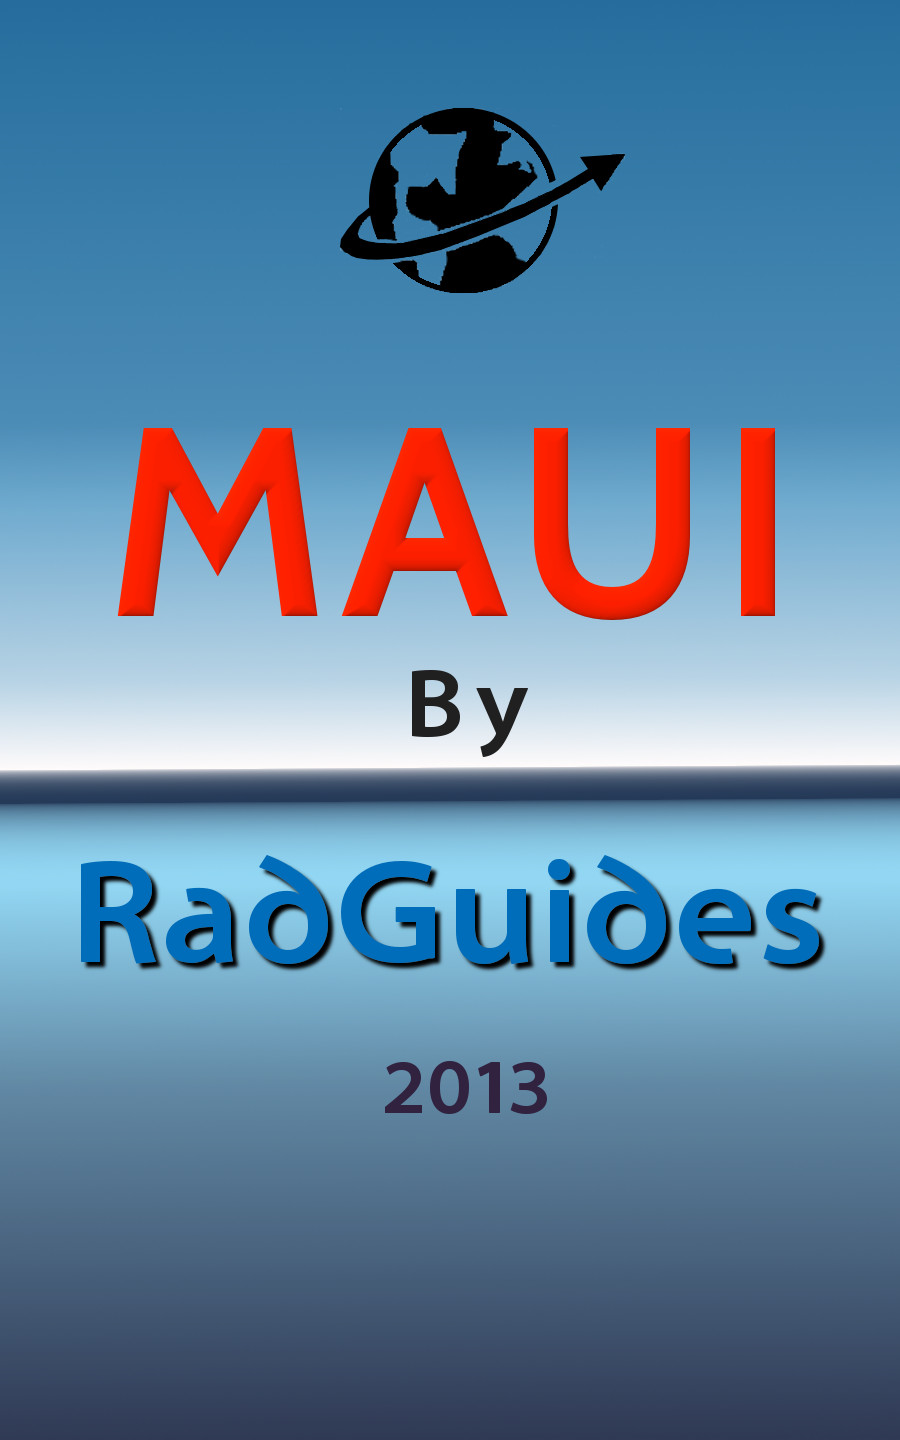 Maui by RadGuides 2013